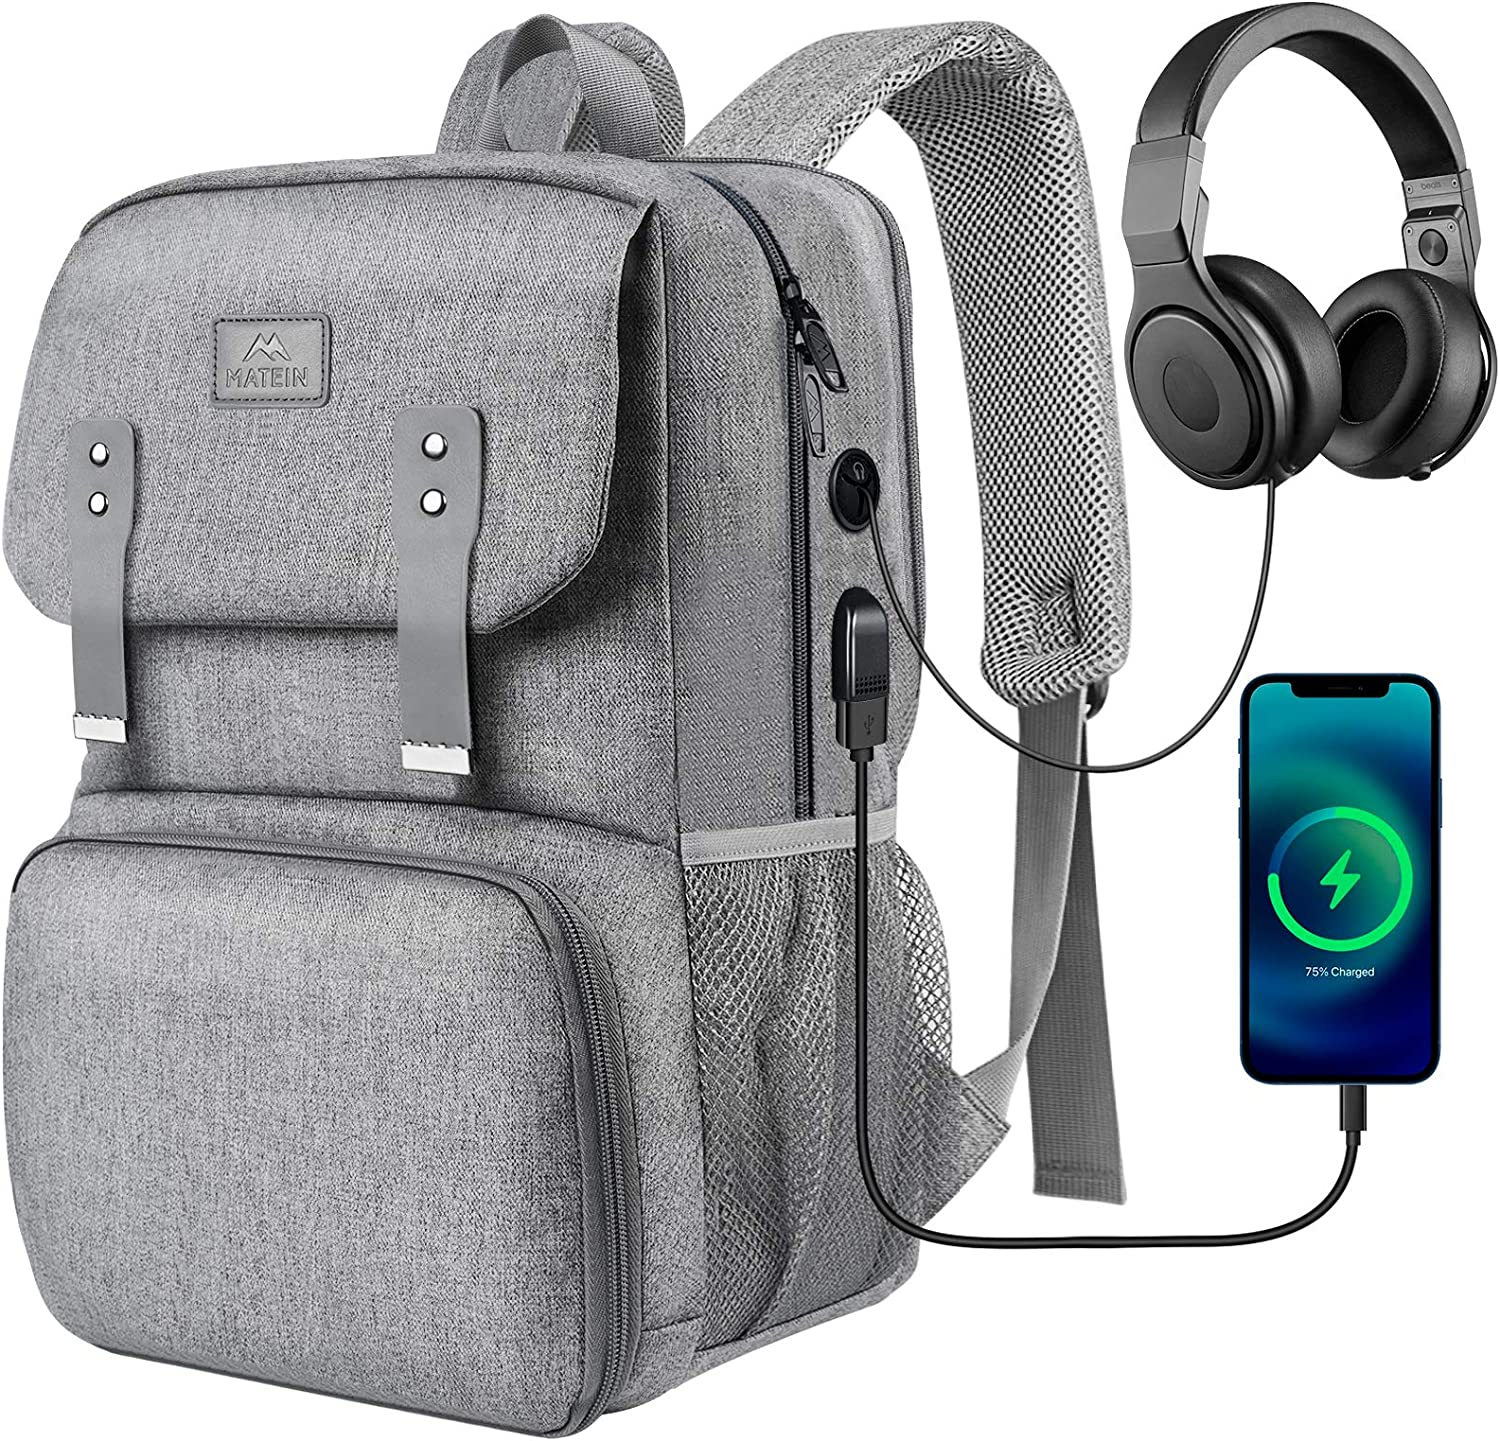 Lunch Bags for Women, Insulated Cooler Backpack Lunchbox School Laptops Bookbag with USB Charging Port, Water Resistant College Computer Bag Fits 15.6 Inch Laptop for Girls, Student Gifts, Grey